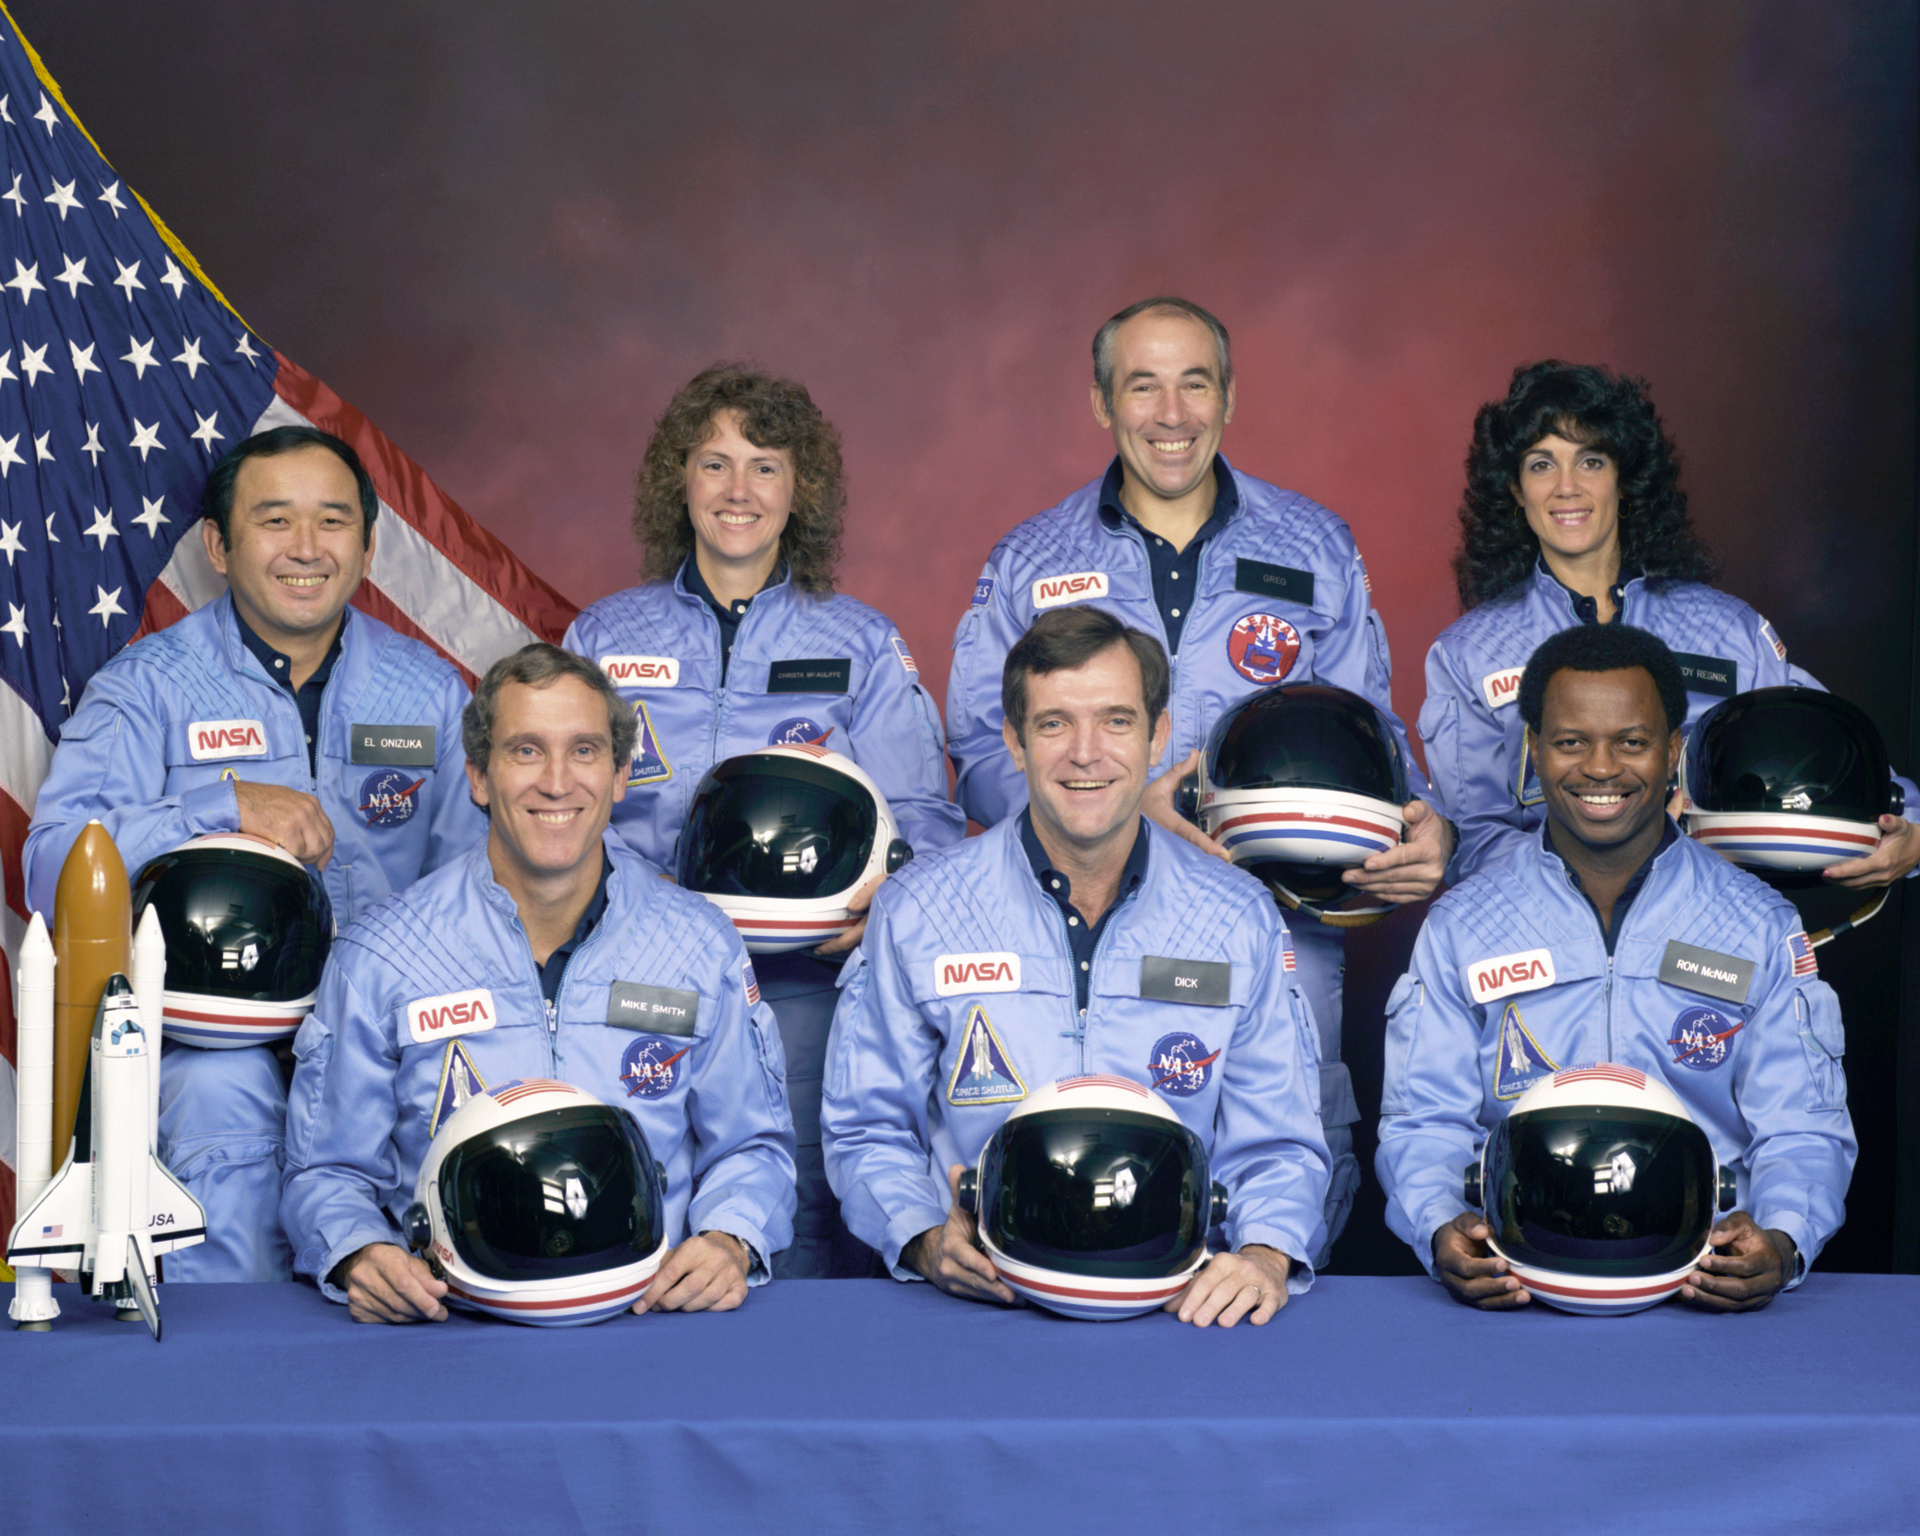 Accident Columbia - STS-51L - équipage - crew - Christa McAuliffe - Gregory B. Jarvis - Judith A. Resnik - Francis R. Scobee  - Ronald E. McNair - Michael J. Smith  - Ellison S. Onizuka